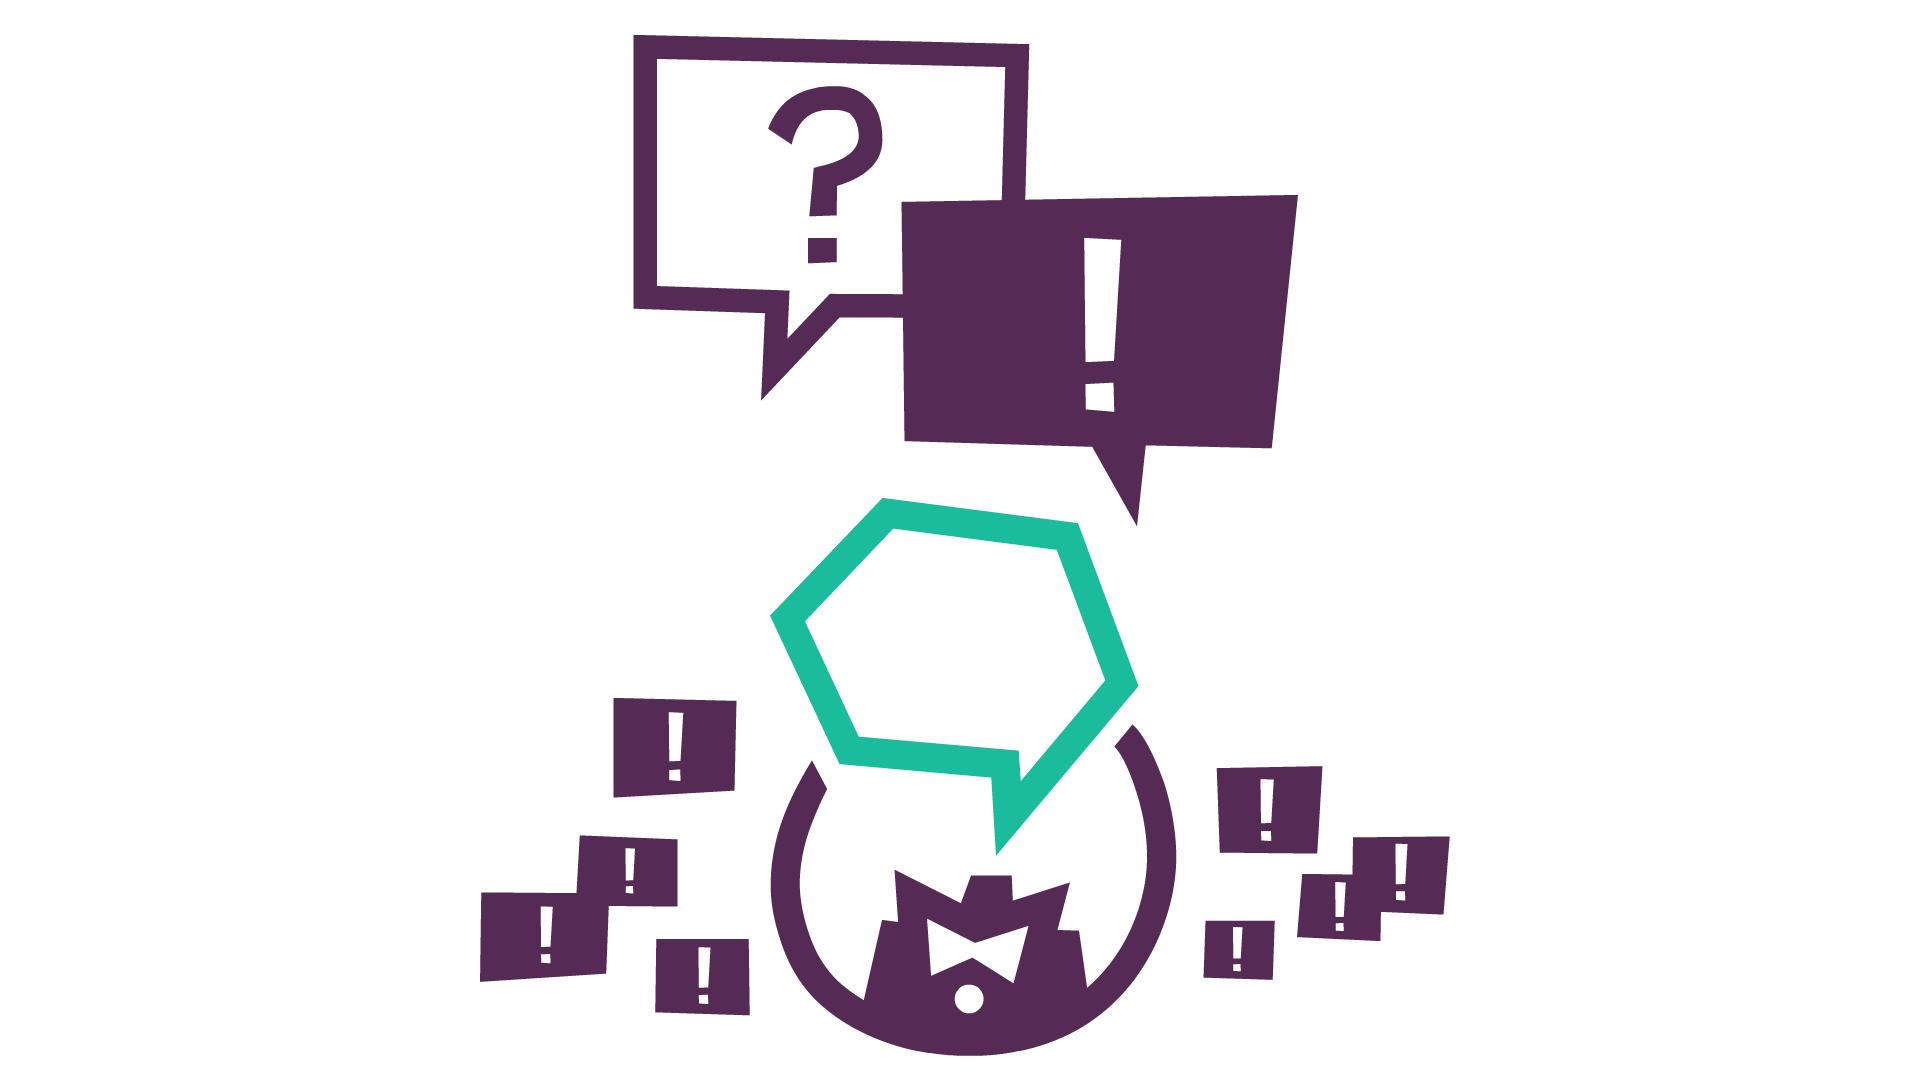 This Informational chatbot can answer questions defined in a knowledge set or FAQ